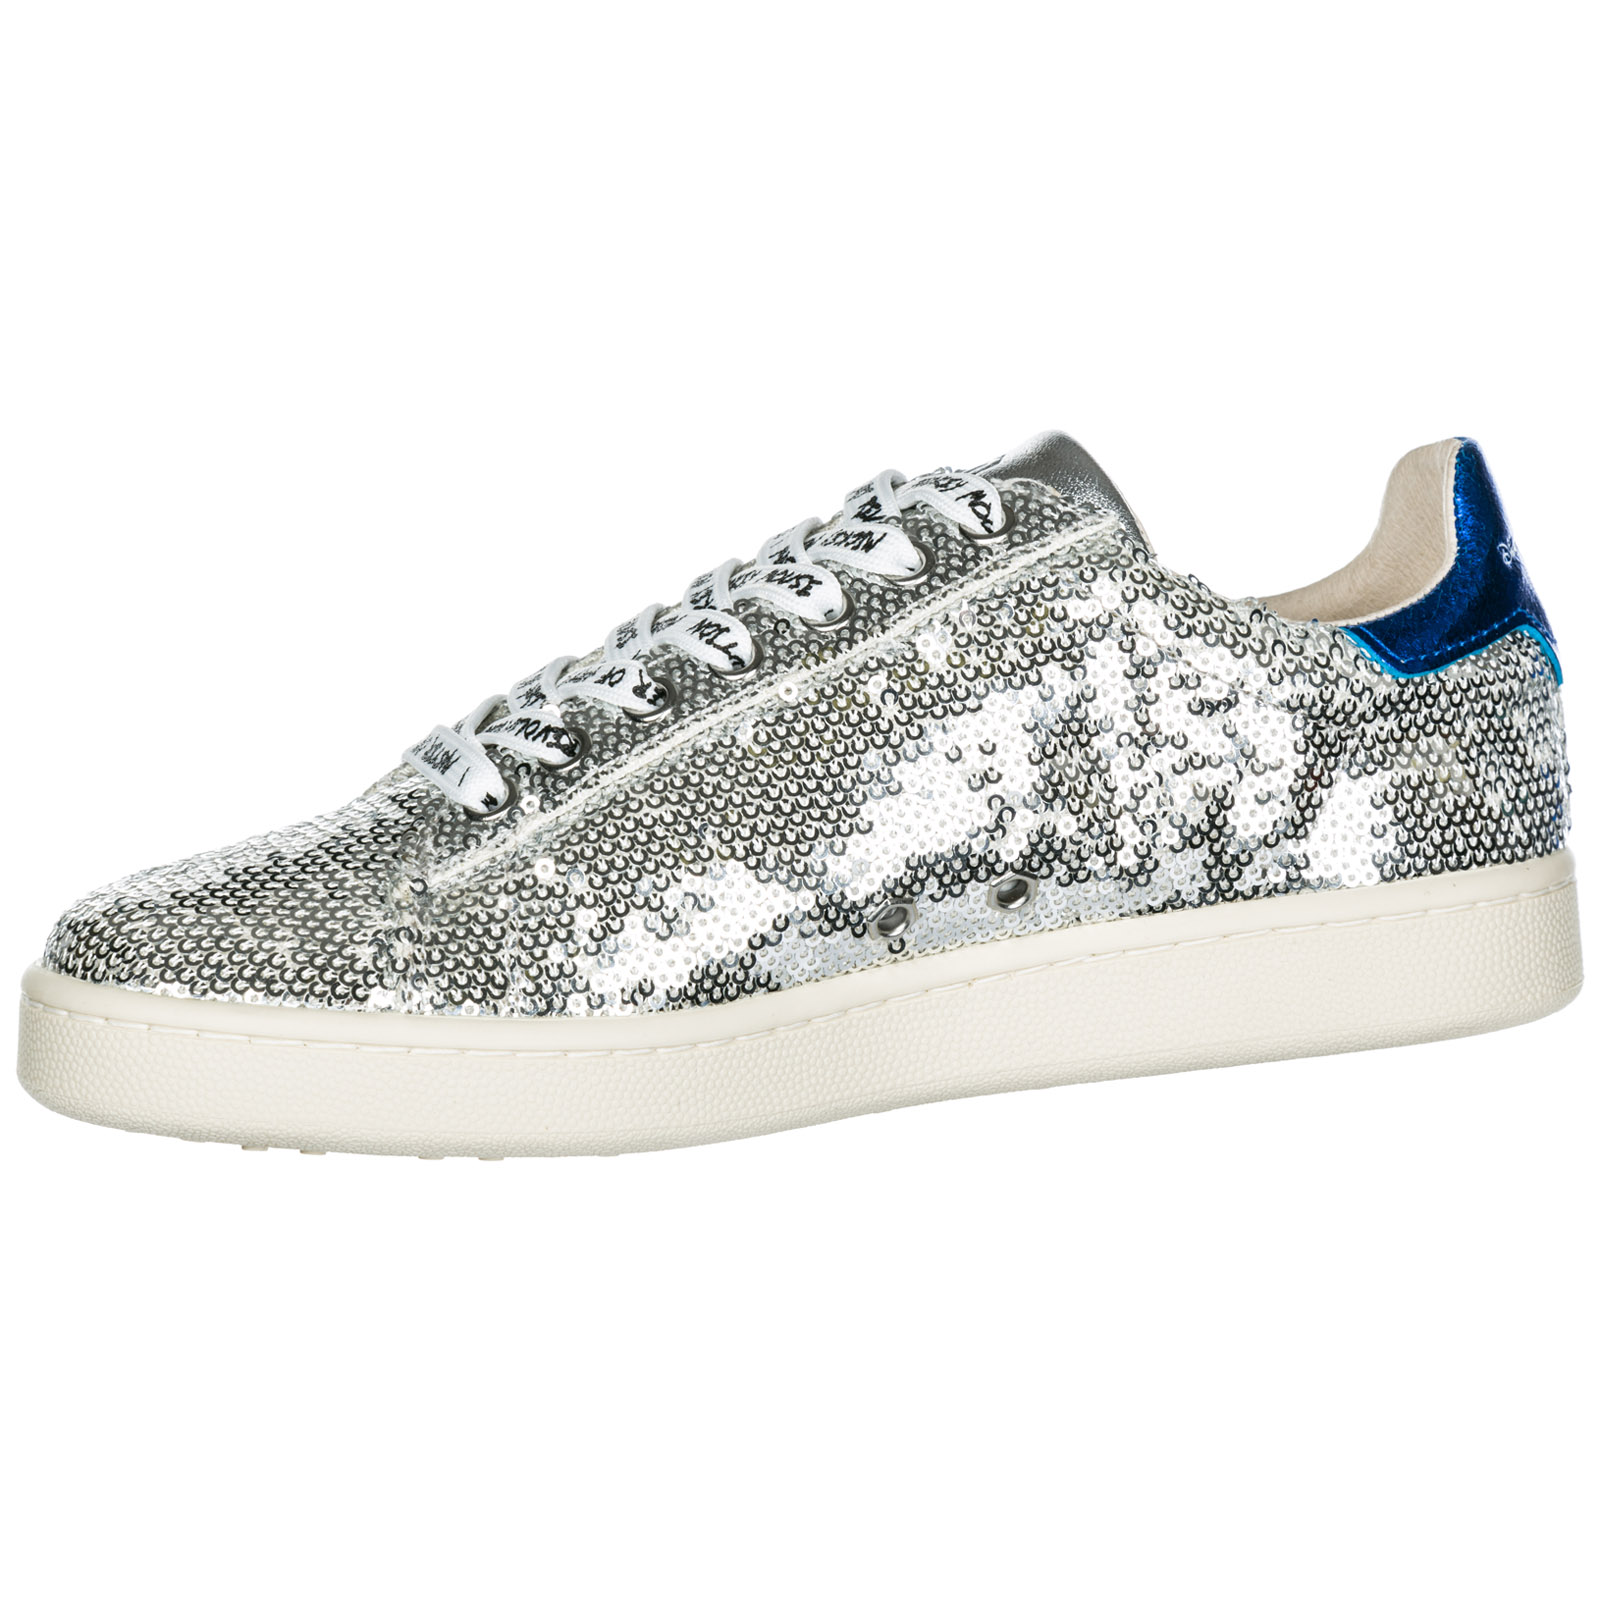 Sneakers Moa Master of Arts Disney Mickey Mouse MD326 silver ... ffb3d29eb27